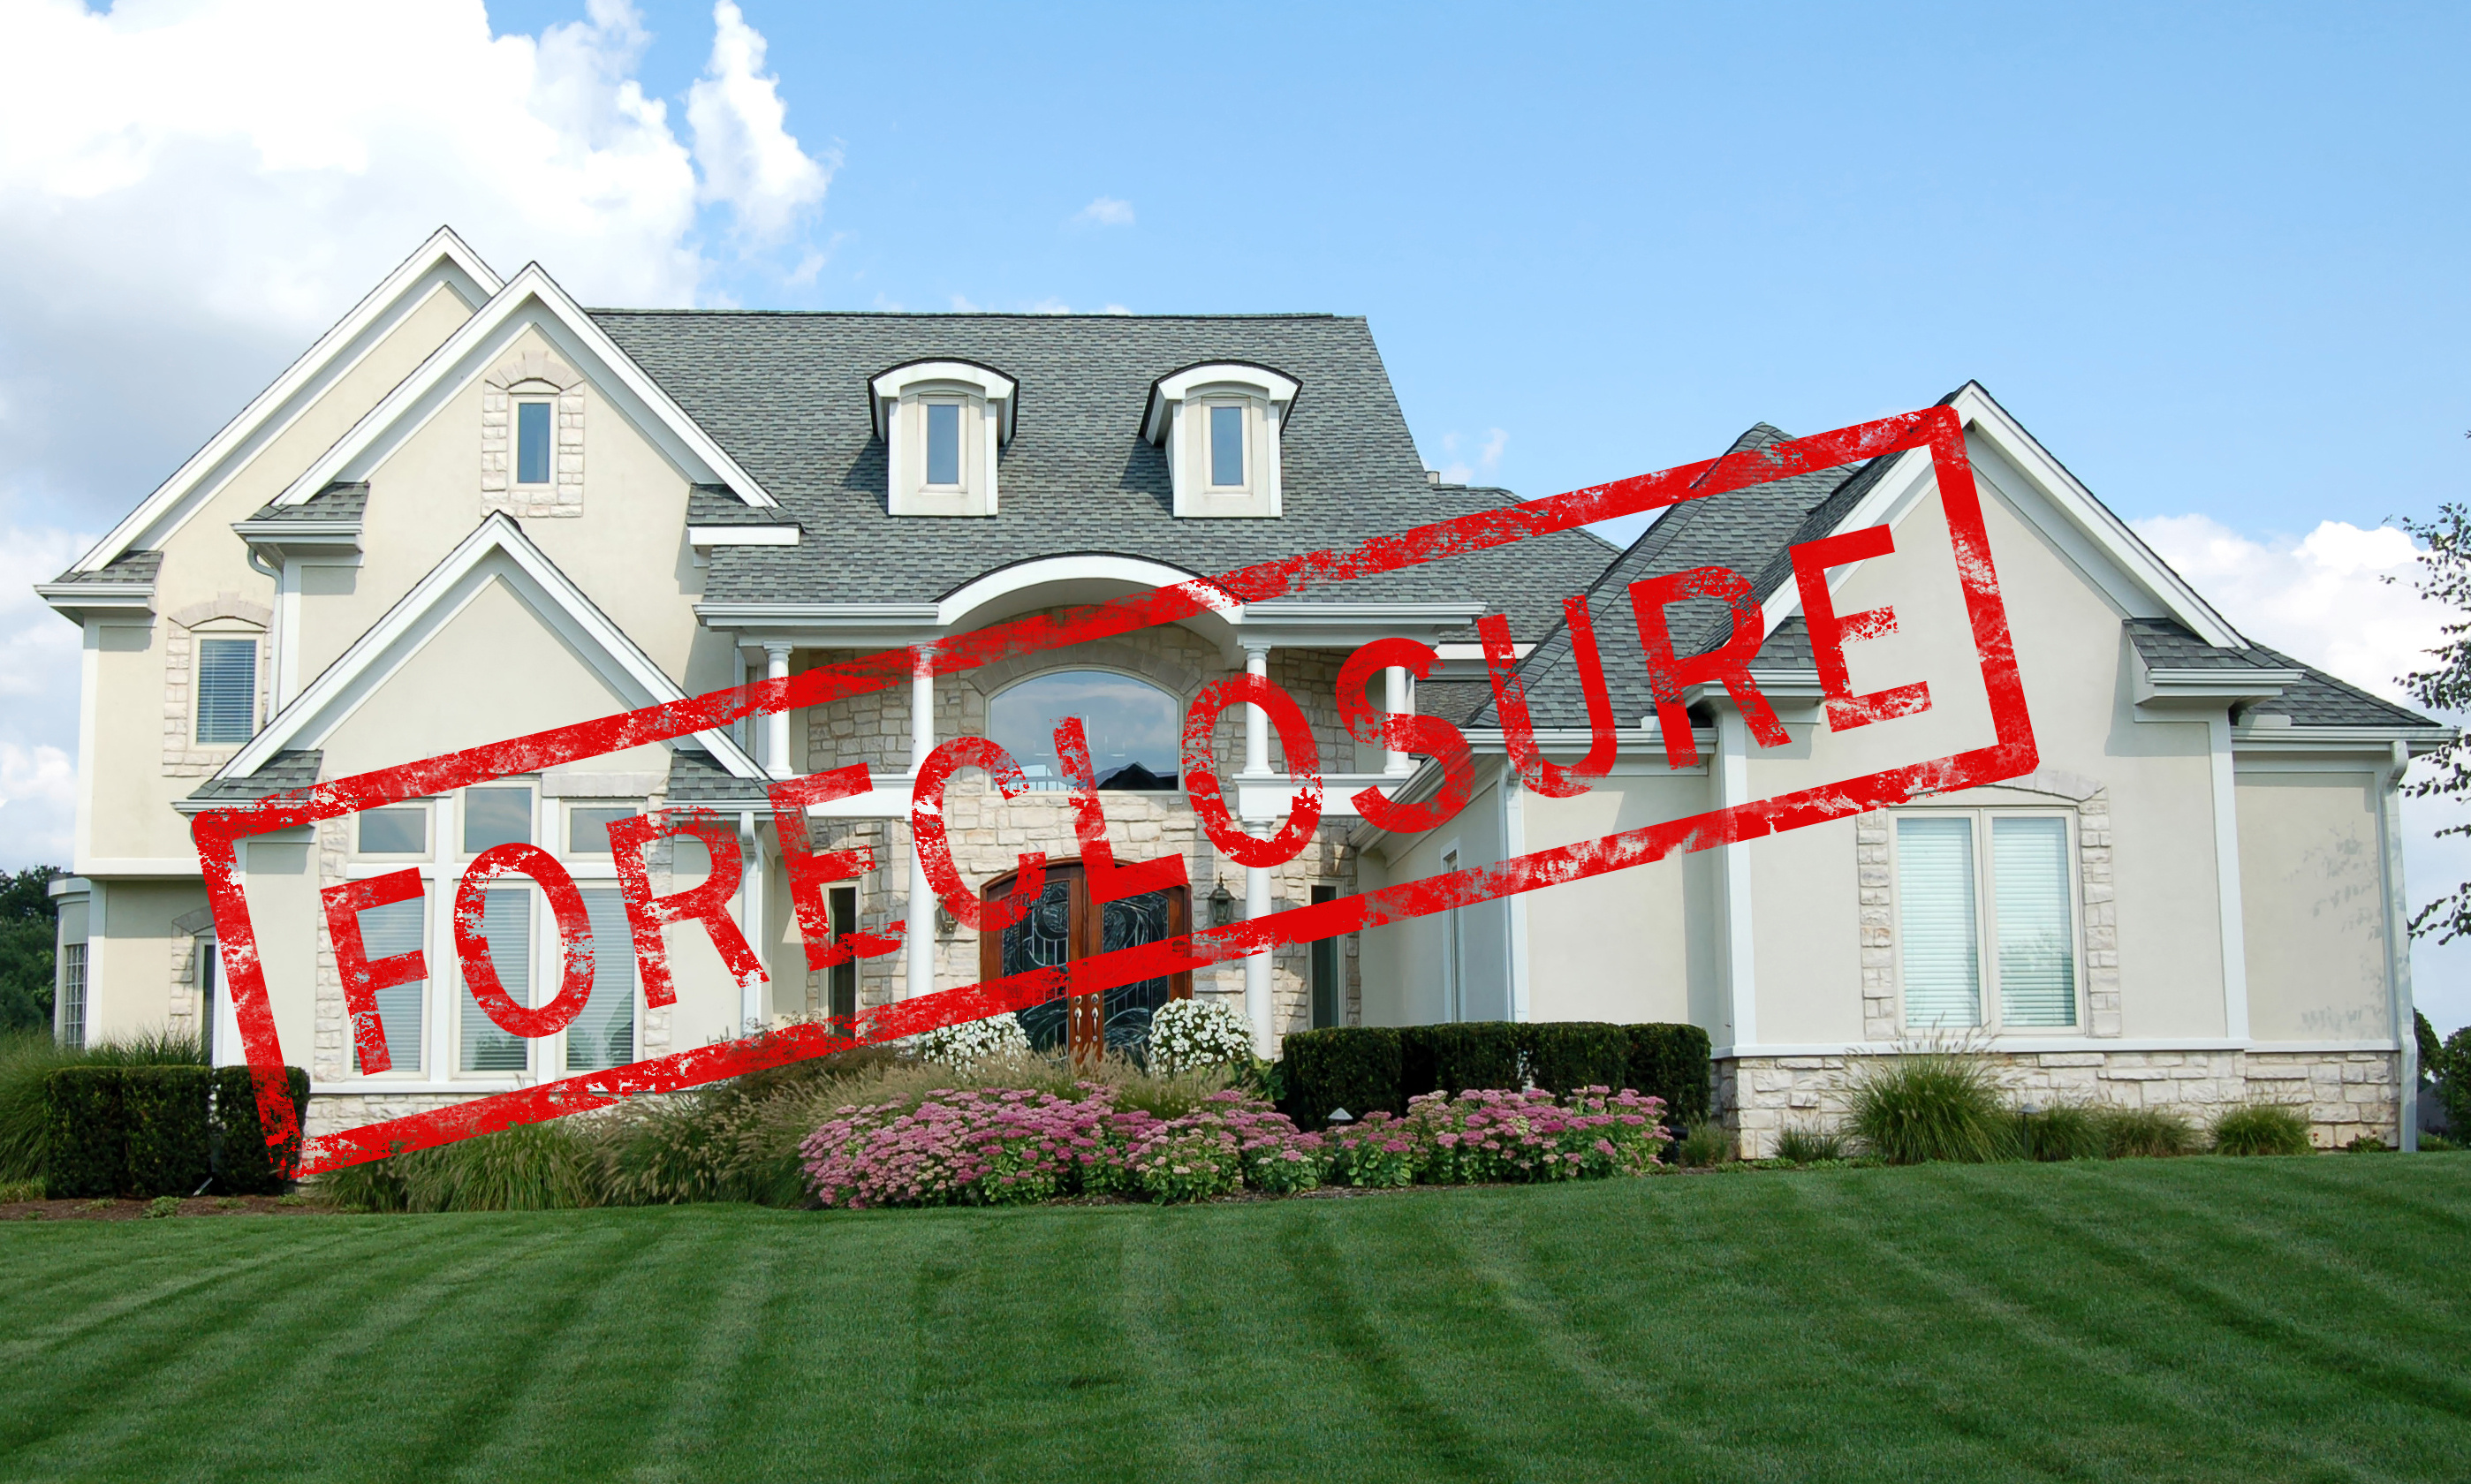 Call Mike Noble Appraisals when you need appraisals on Elmore foreclosures